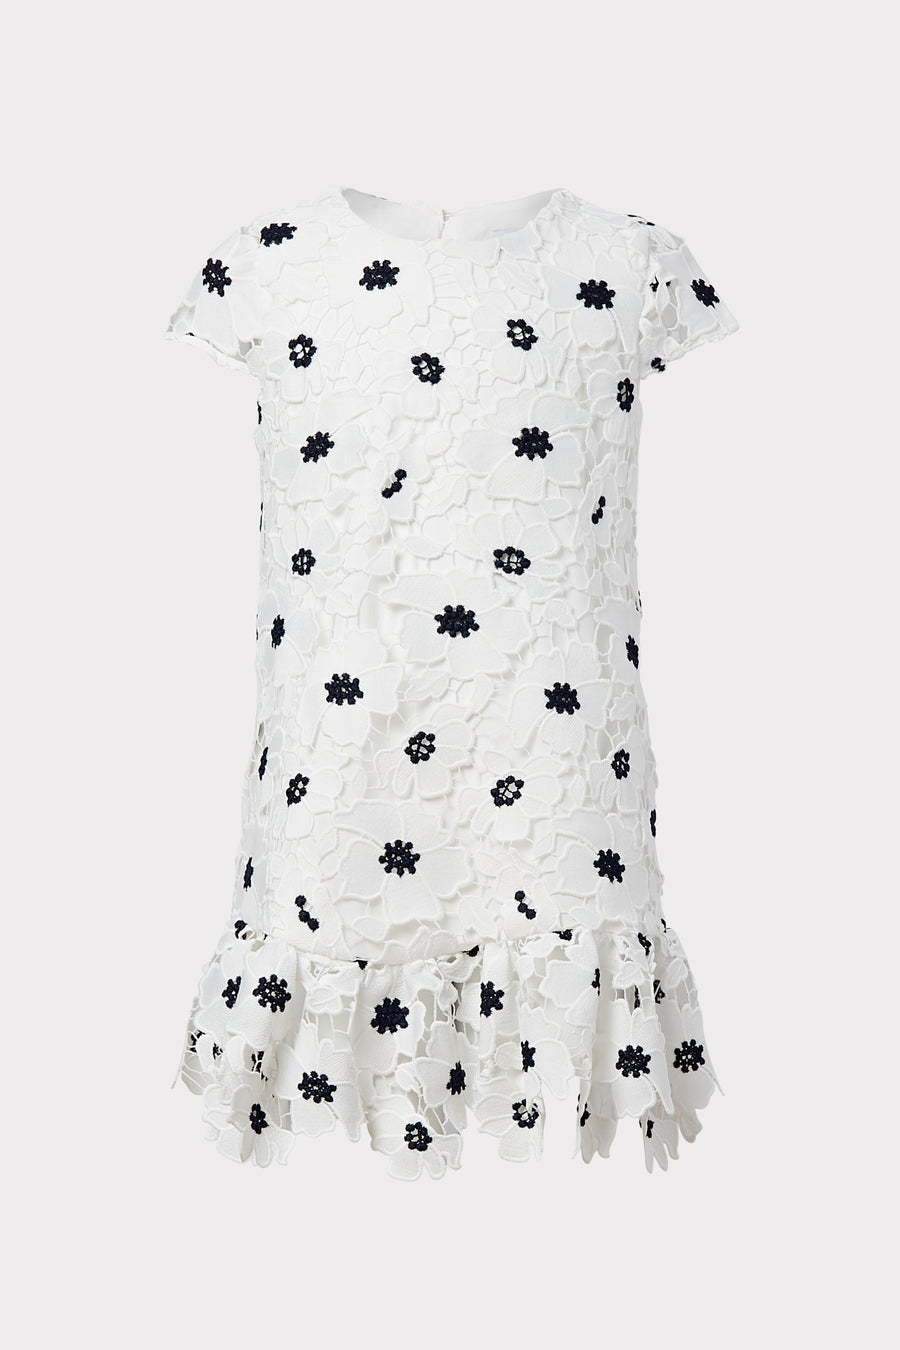 Milly Minis 3D Poppy Floral Lace Dress